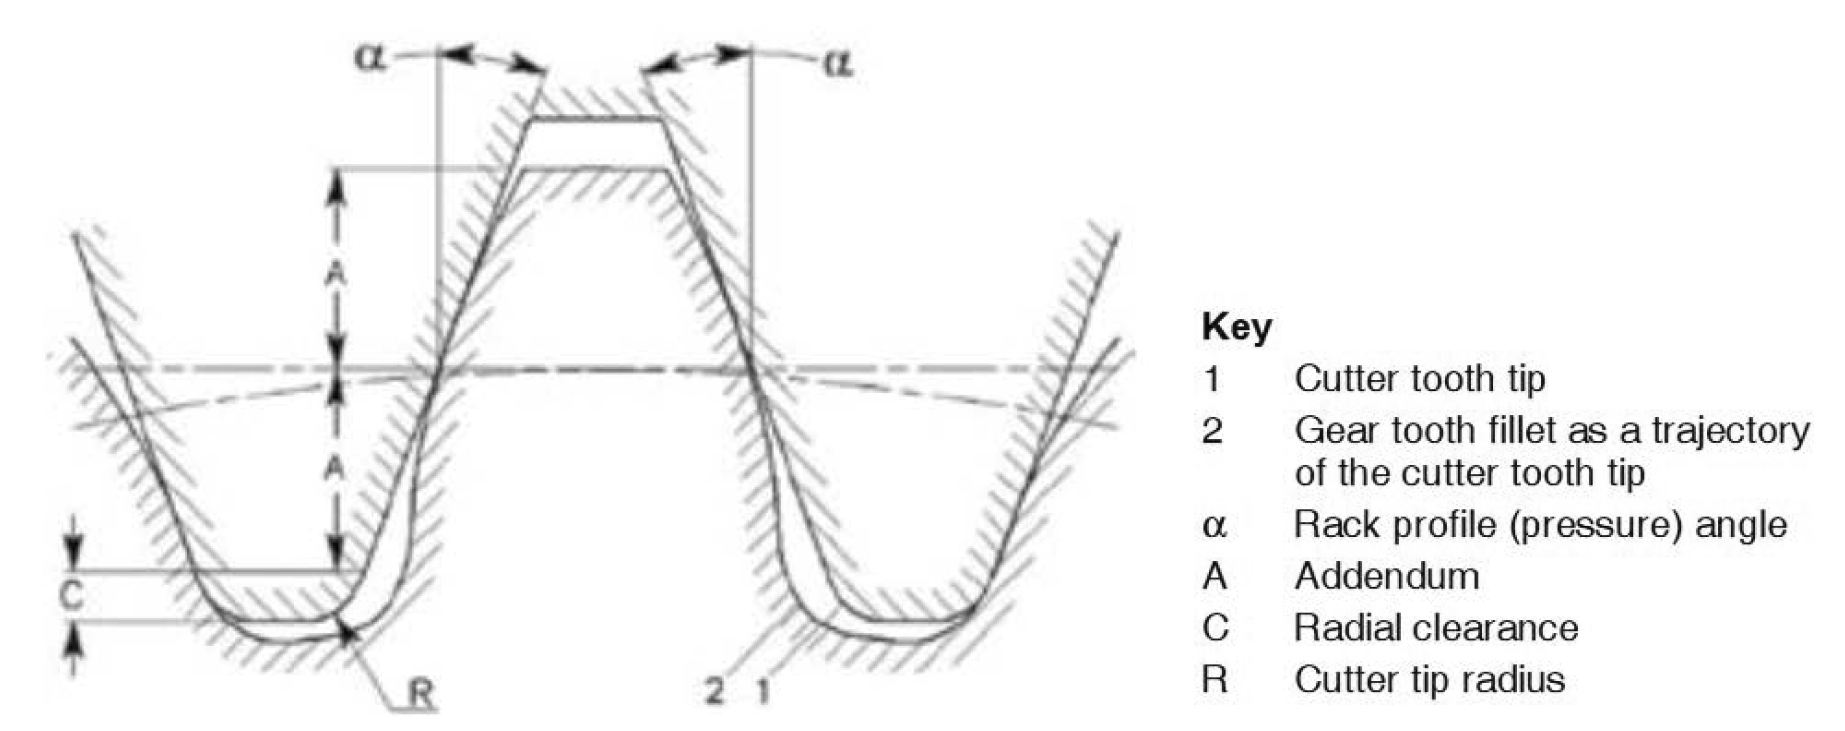 Effects of Asymmetric Cutter Tip Radii on Gear Tooth Root